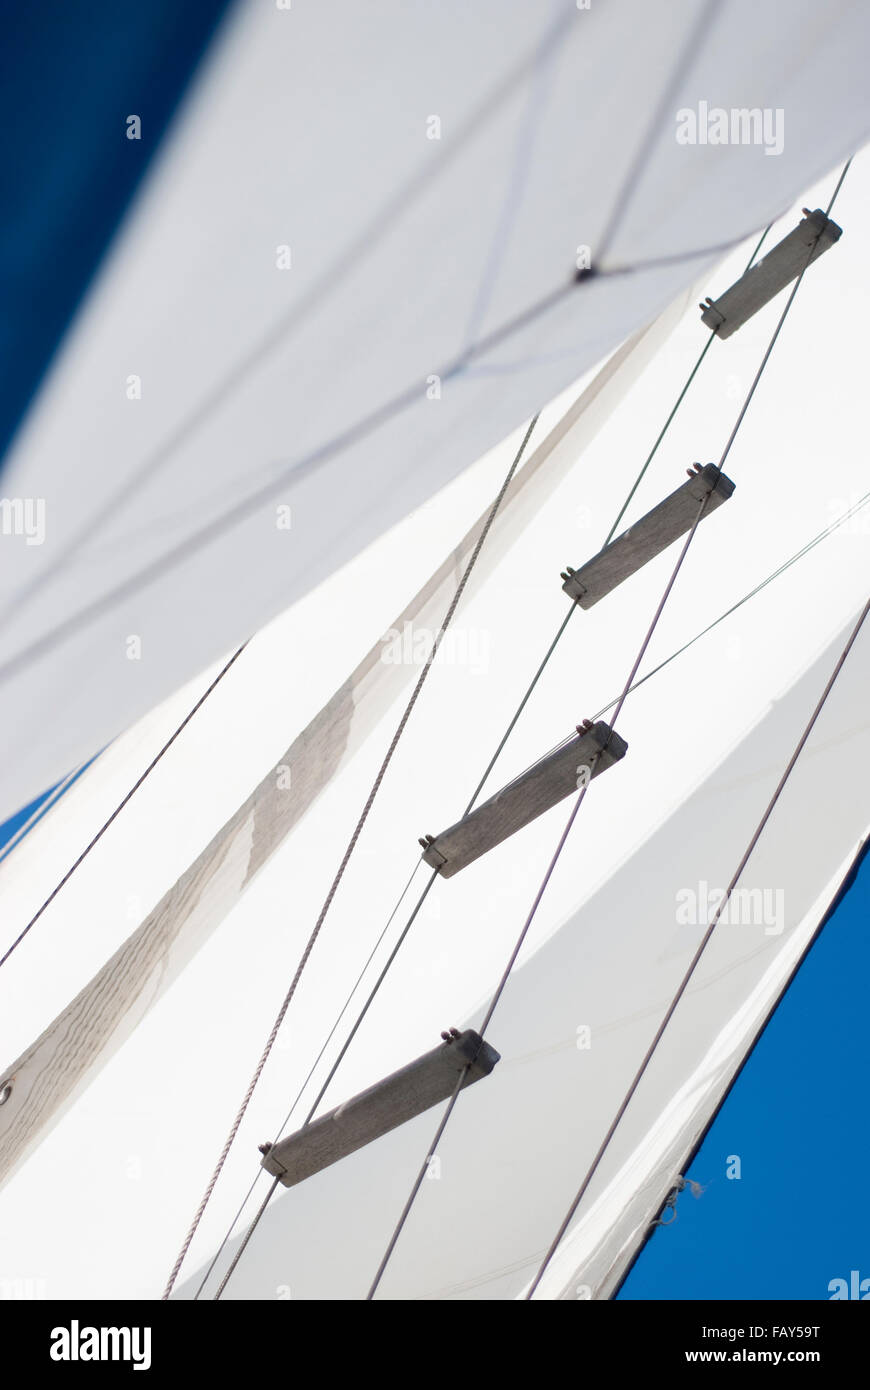 Mainstay and sail on a sloop. - Stock Image